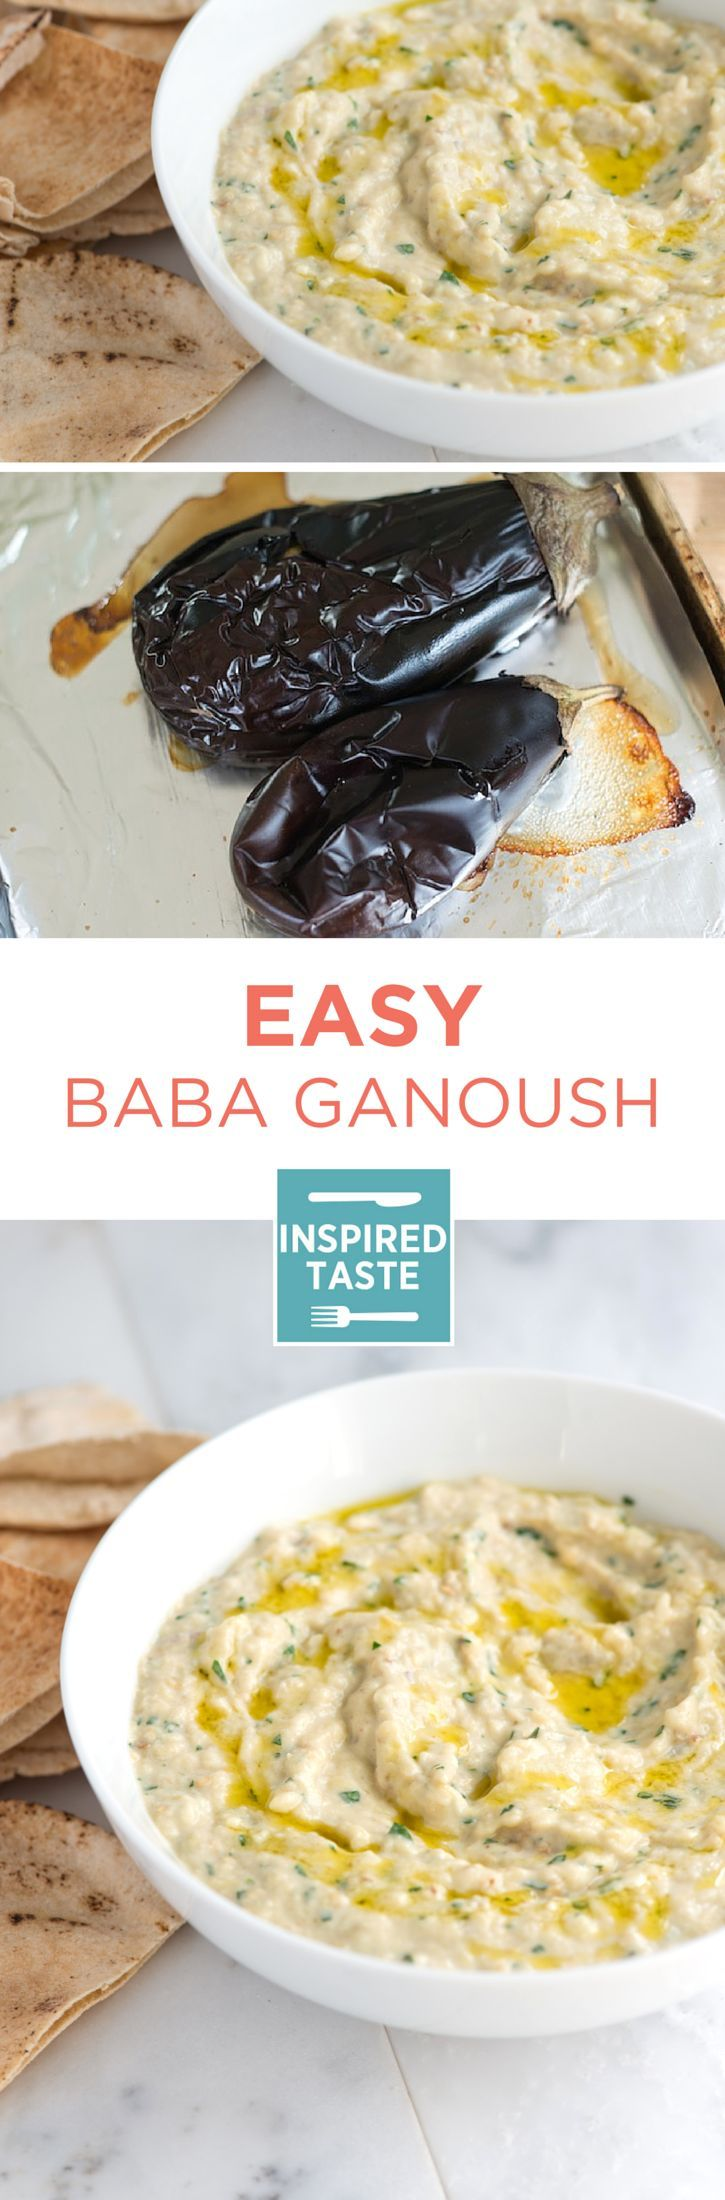 Making this baba ganoush recipe, an amazing roasted eggplant dip, at home is so simple. Serve with vegetables, sliced bread or baked pita chips. Recipe on inspiredtaste.net